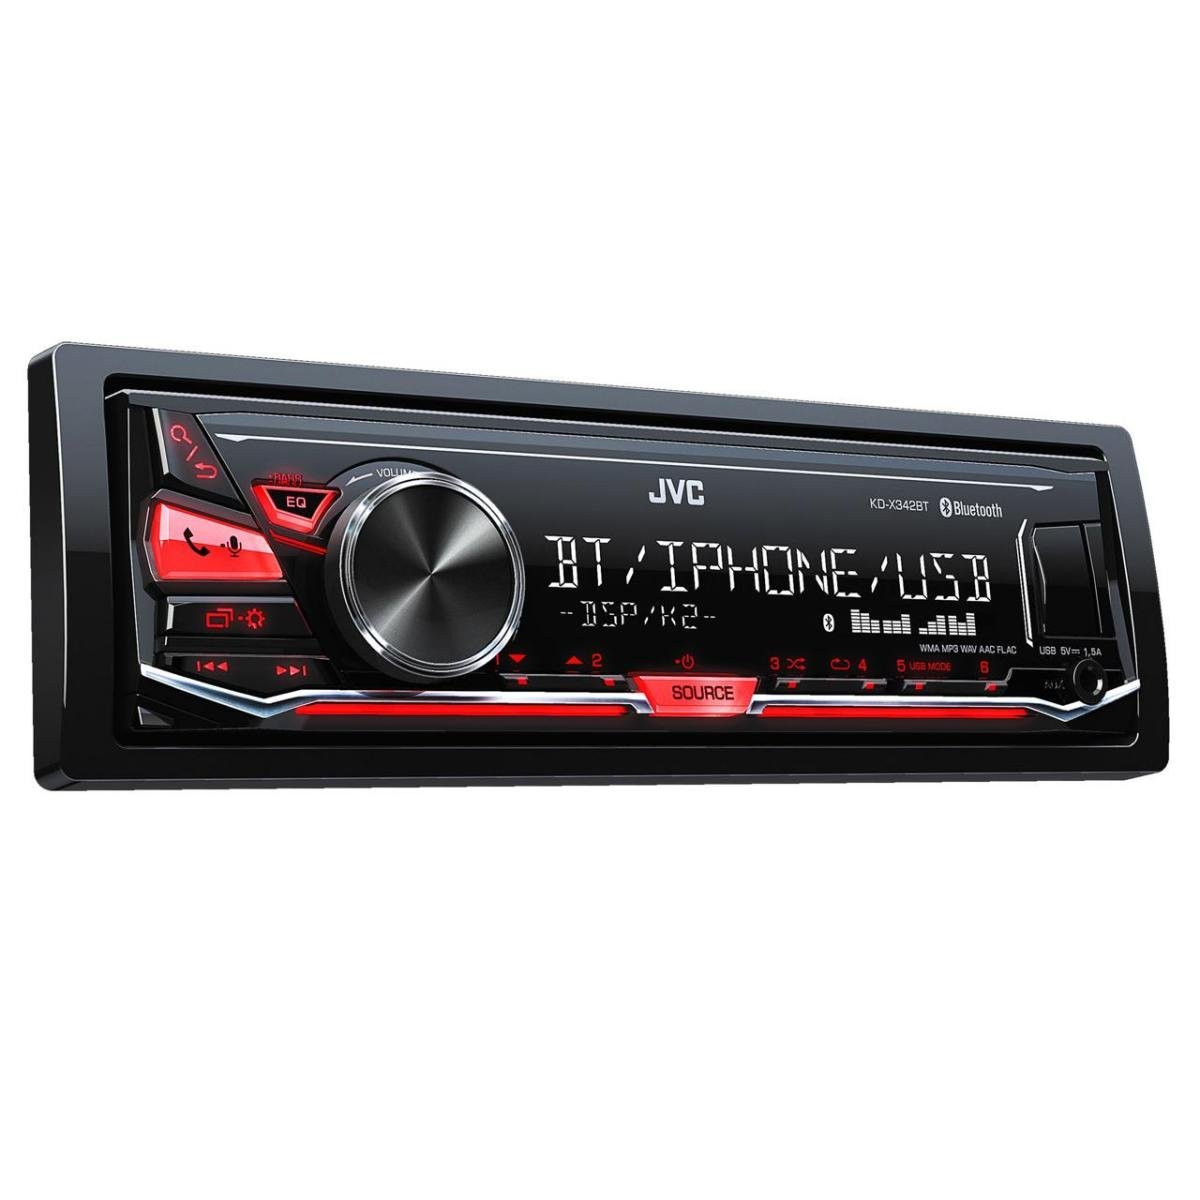 JVC KD-X342BT Mechless Bluetooth Tuner with USB, Aux, Iphone and Android Control